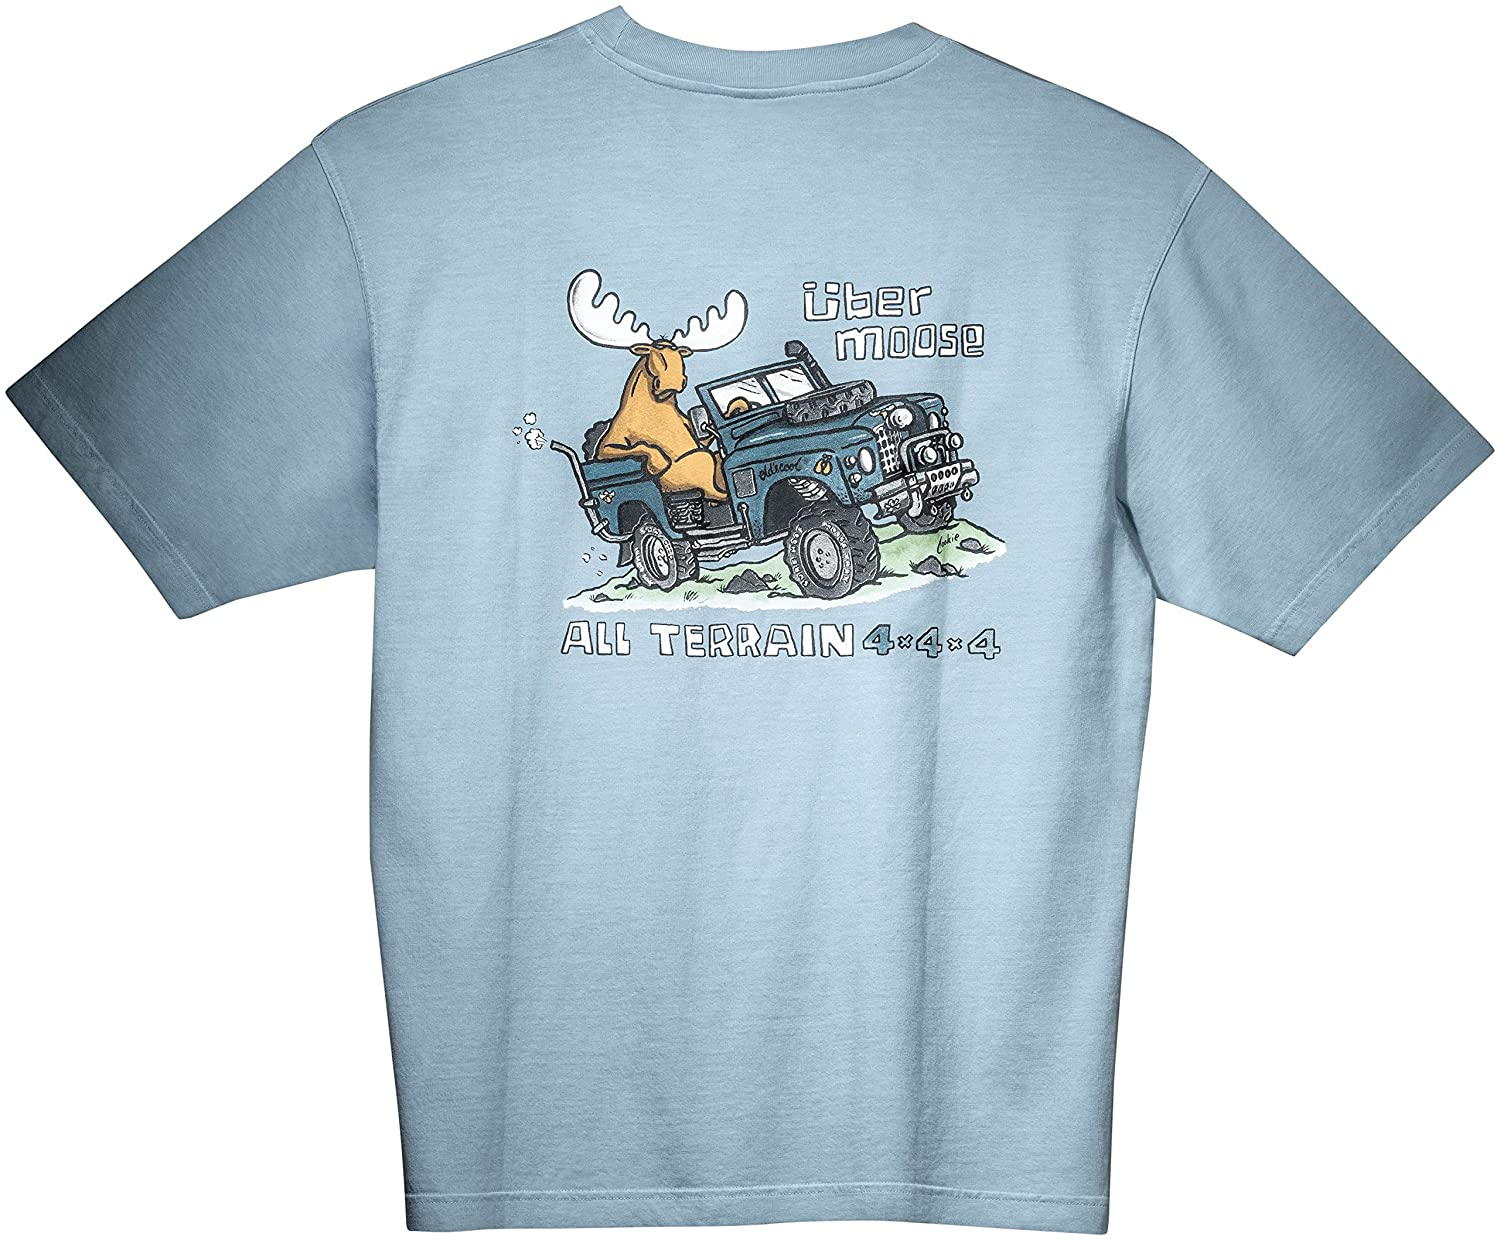 Uber Moose All Terrain Printed T Shirt